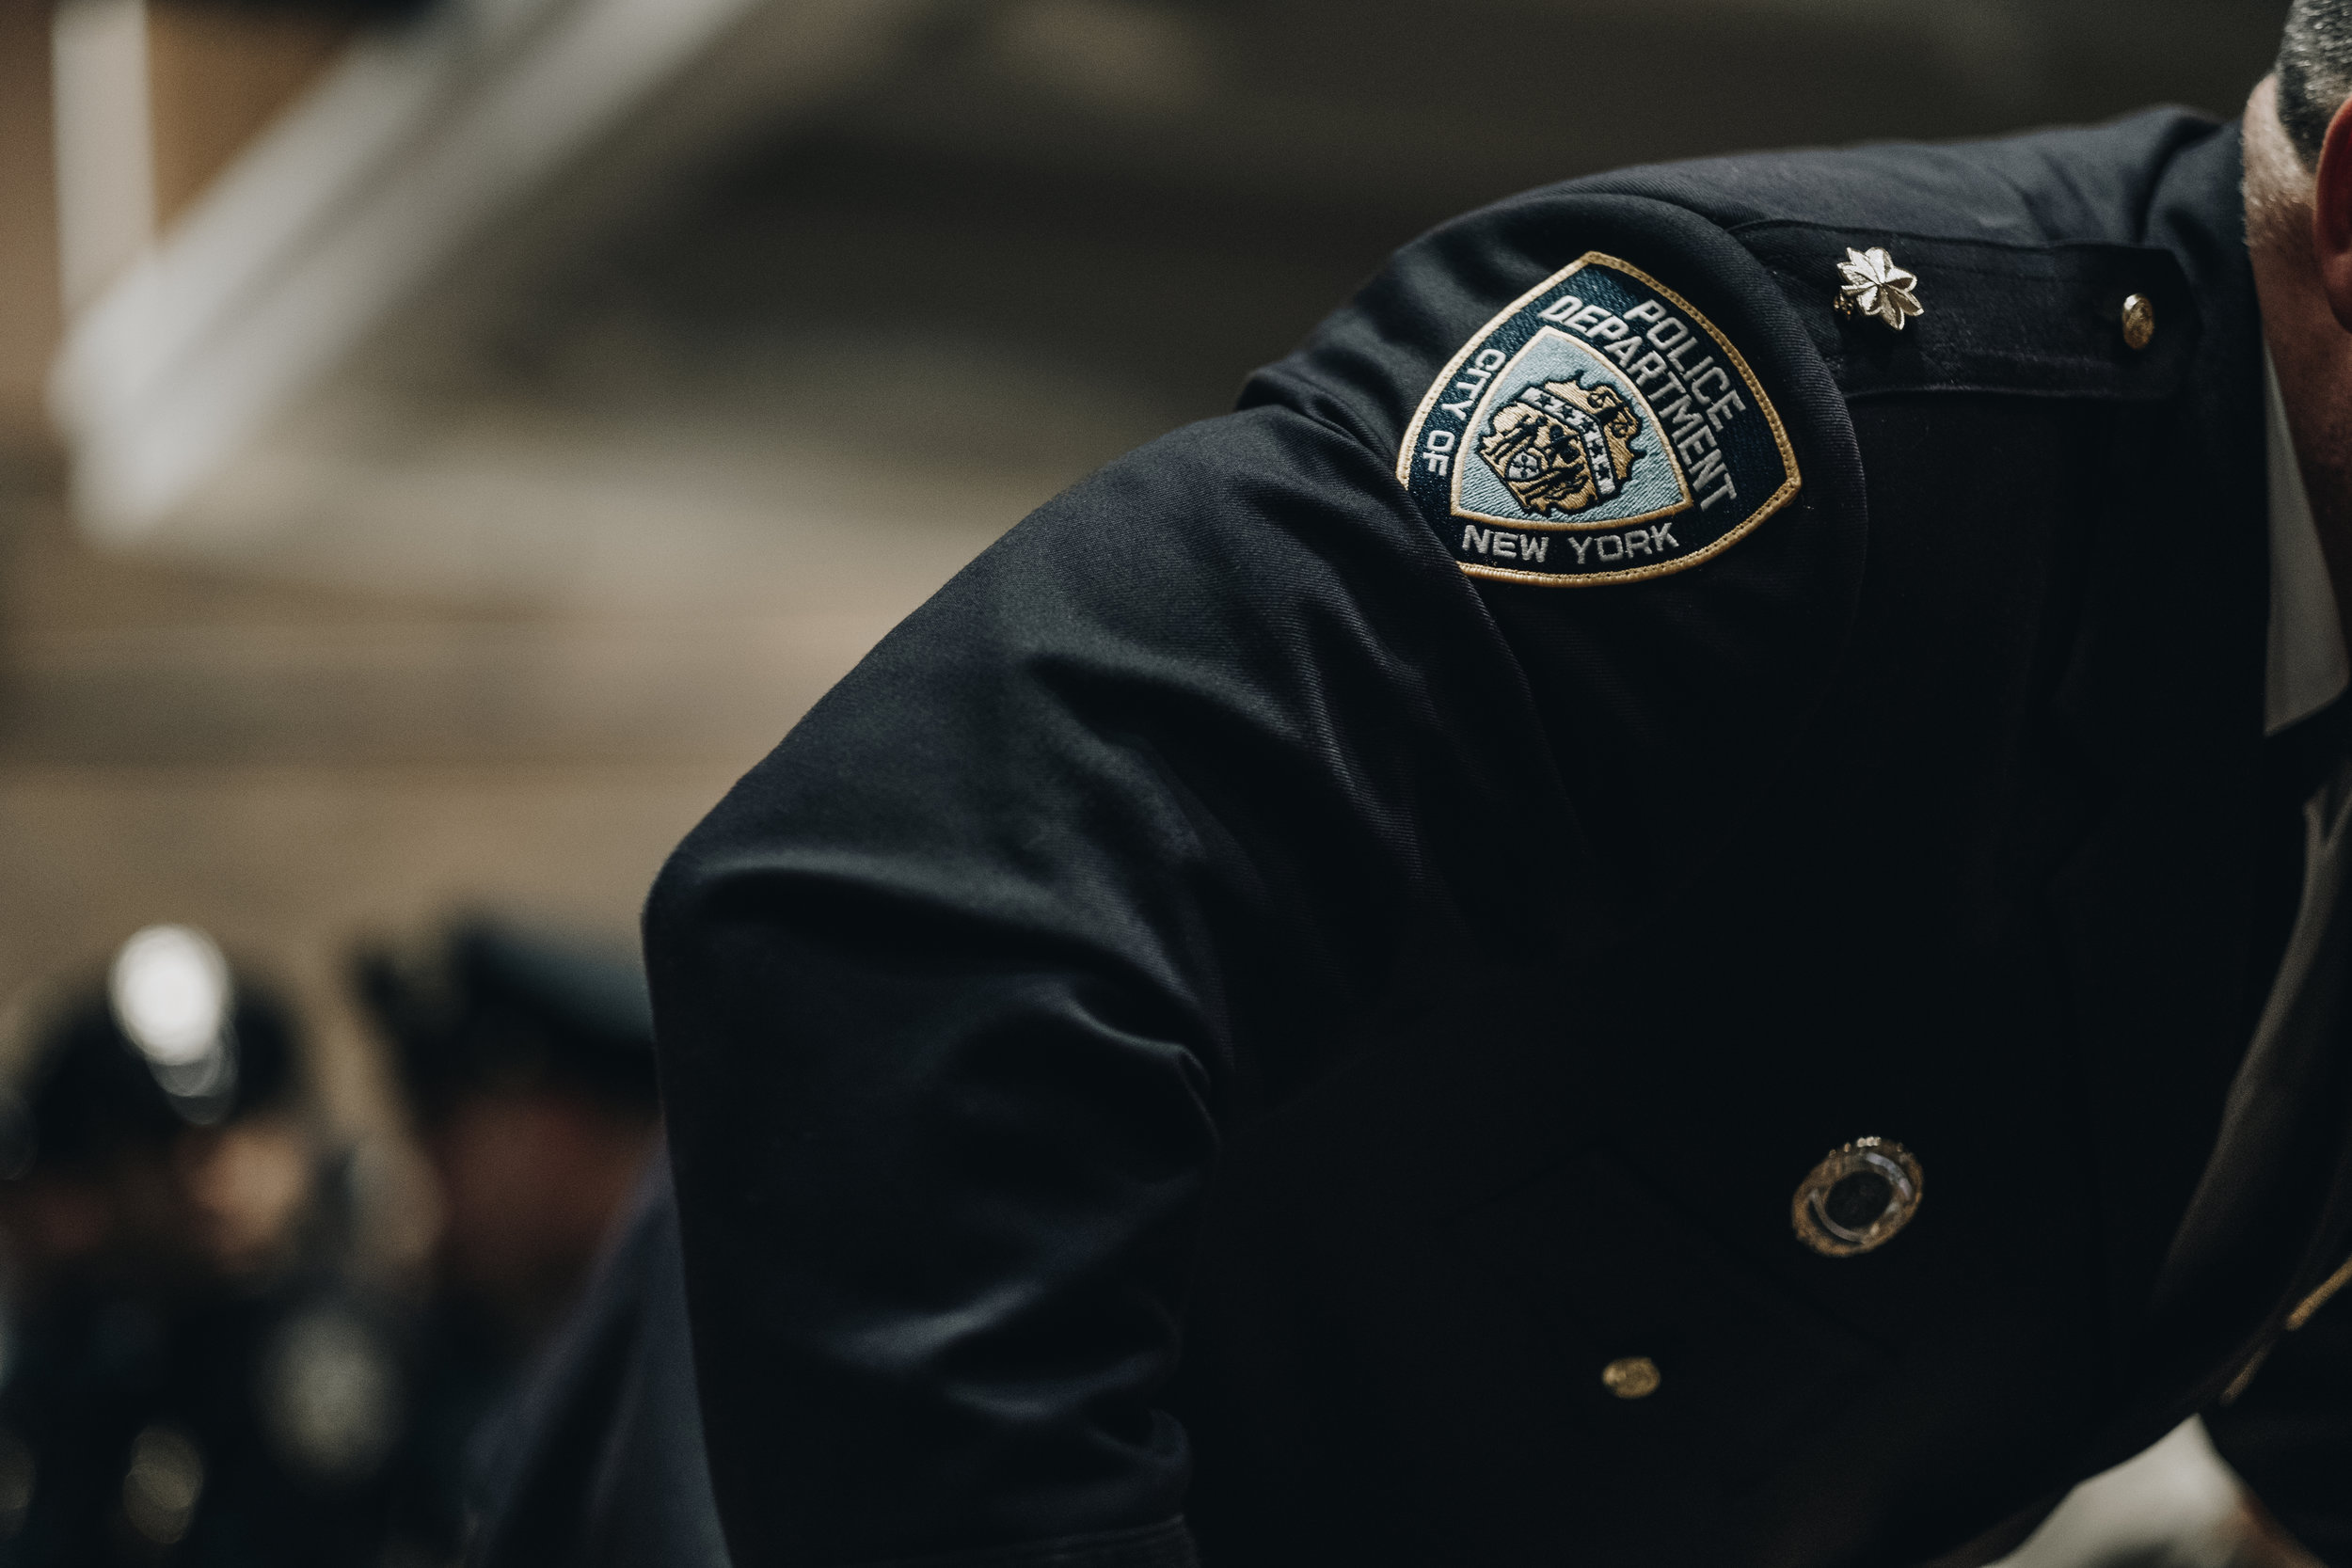 NYPD_Promotions-22.jpg